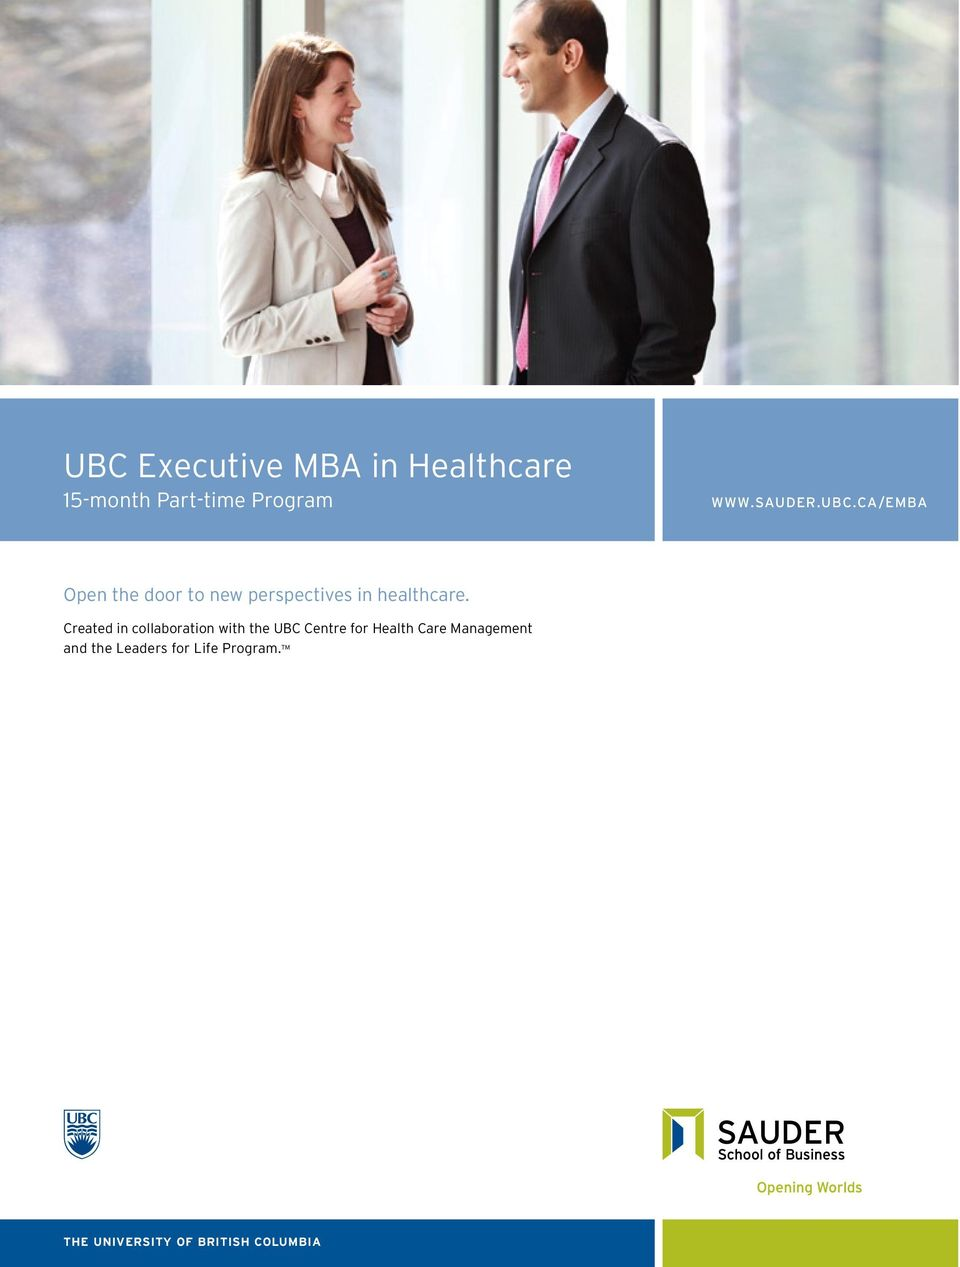 Created in collaboration with the UBC Centre for Health Care